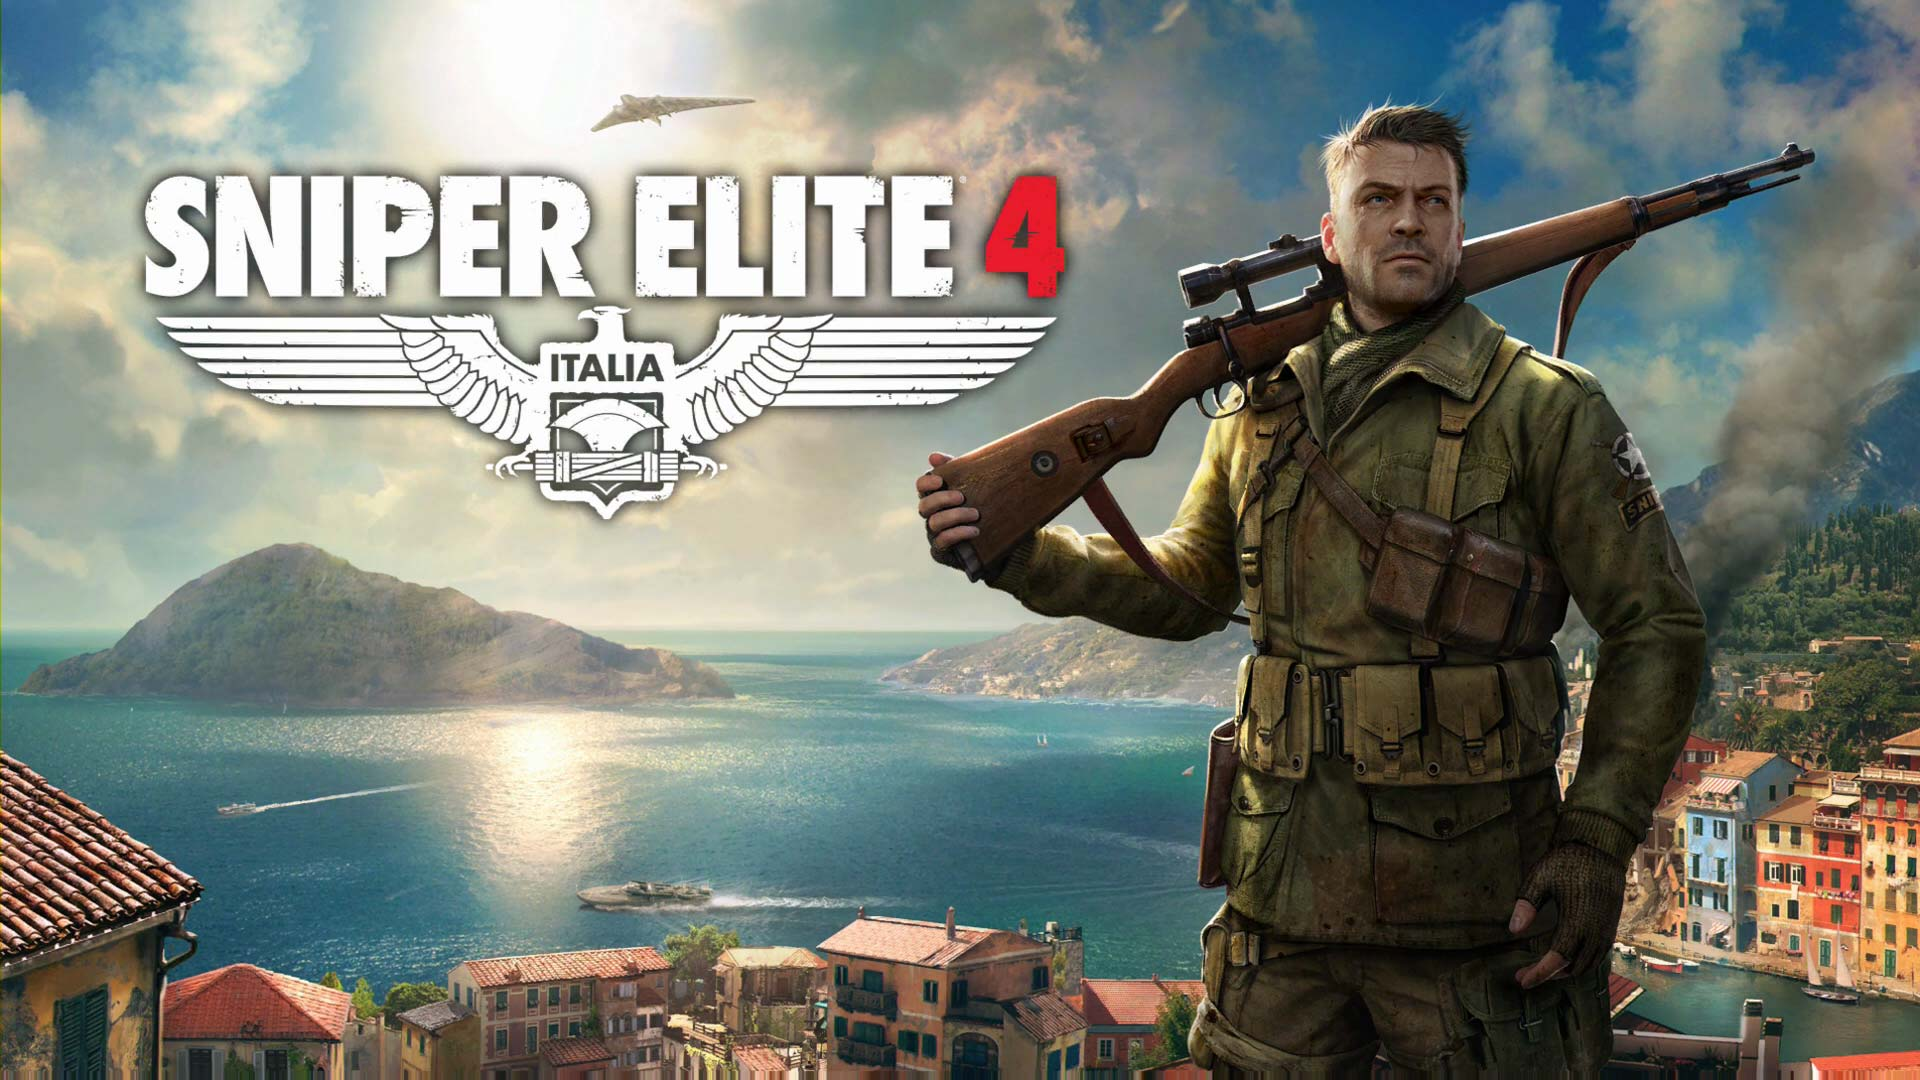 Sniper Elite 4 Wallpapers High Quality Download 1920x1080